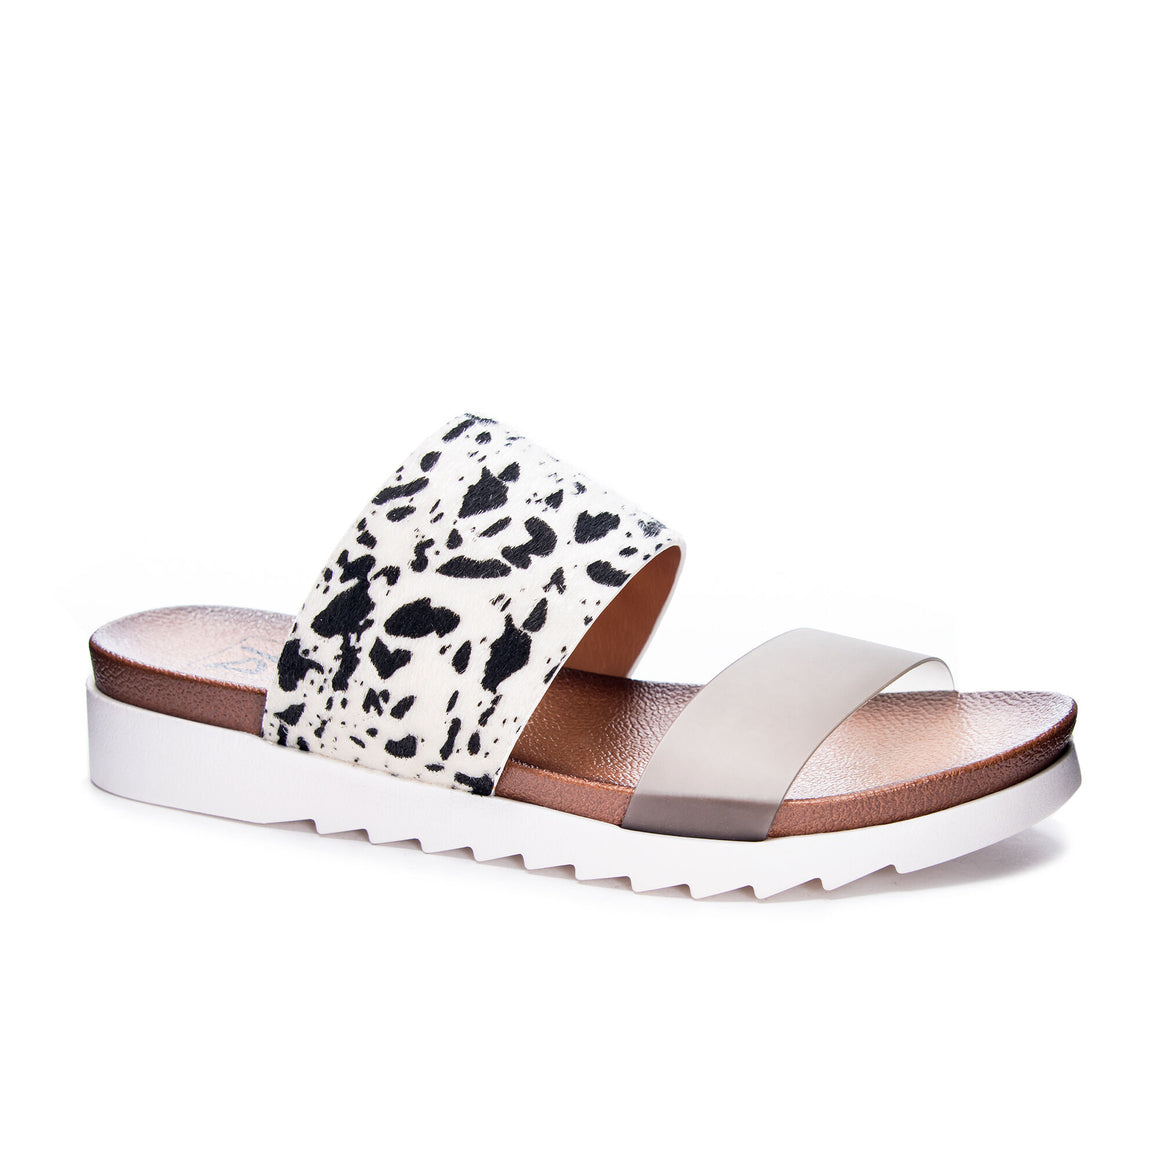 Dirty Laundry Women's Coastline Pony Sandal - Black/White